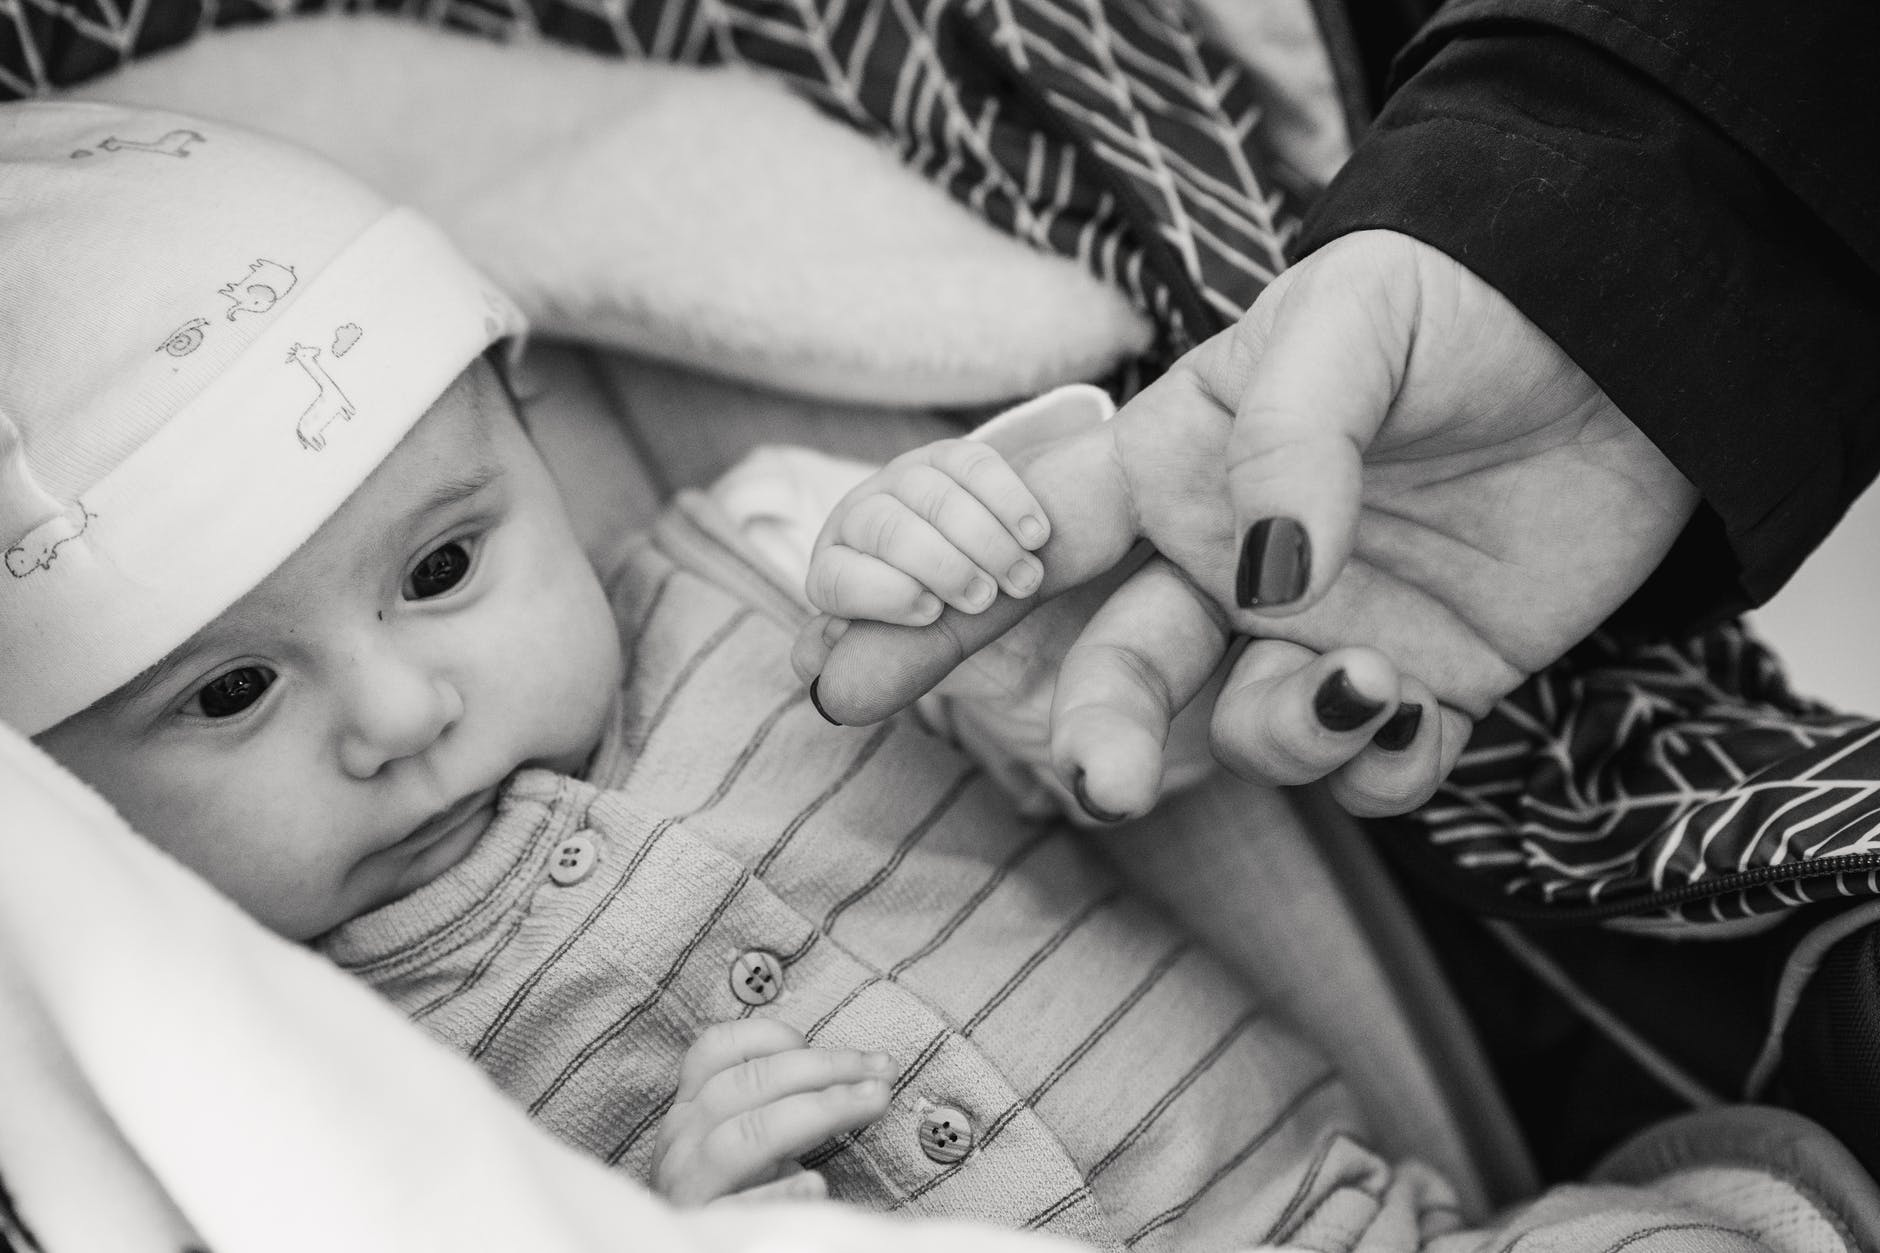 Ivanna took the baby home and got him checked out.   Source: Pexels